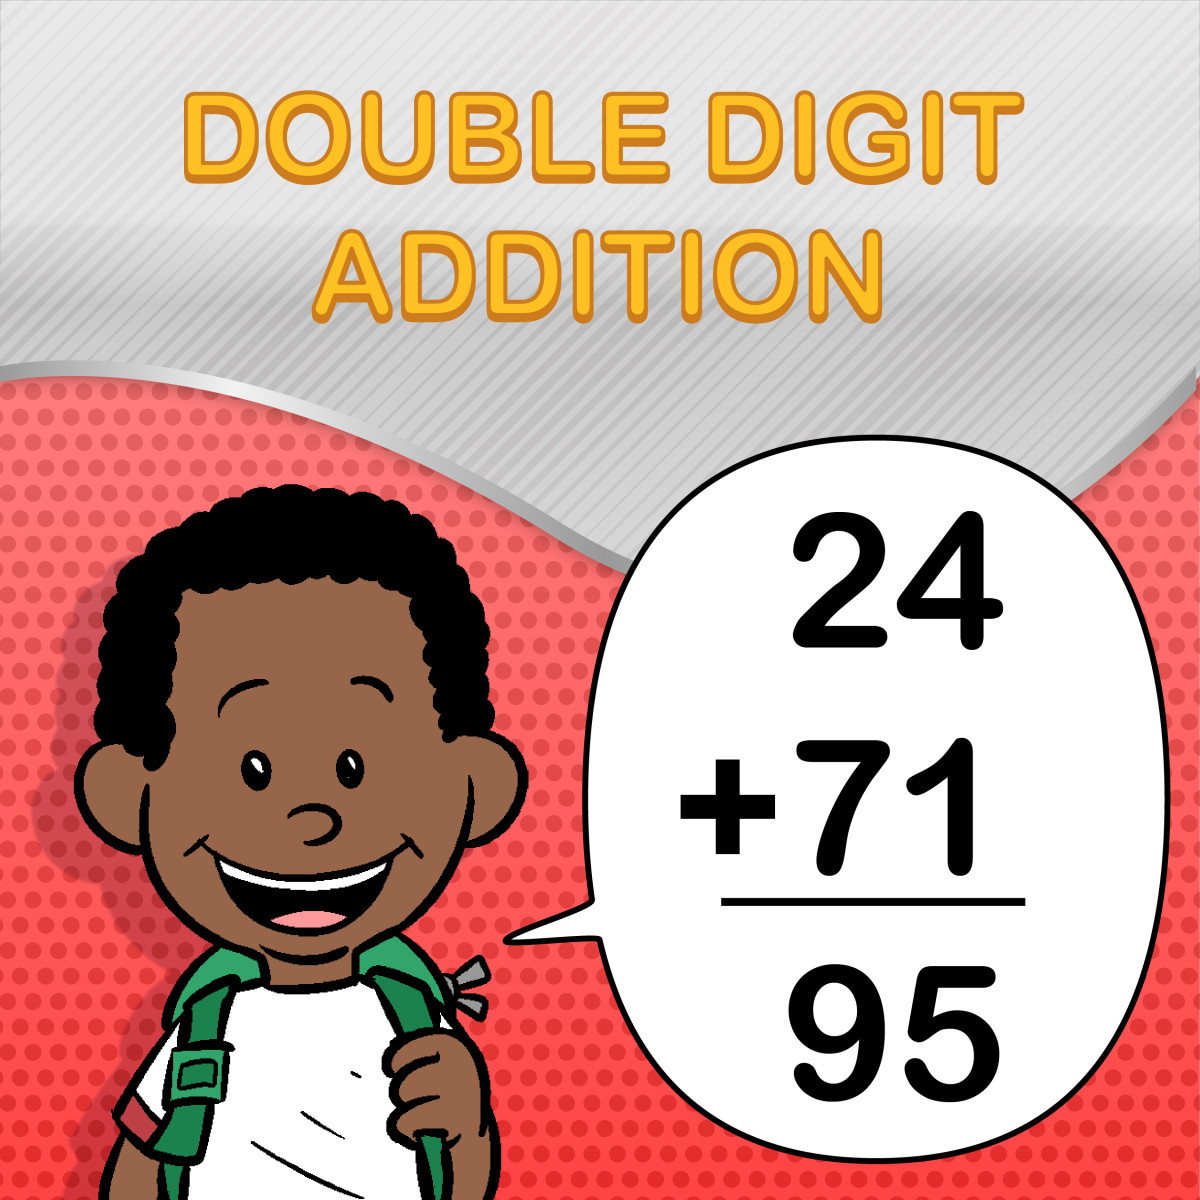 Double Digit Addition Worksheets For Kids